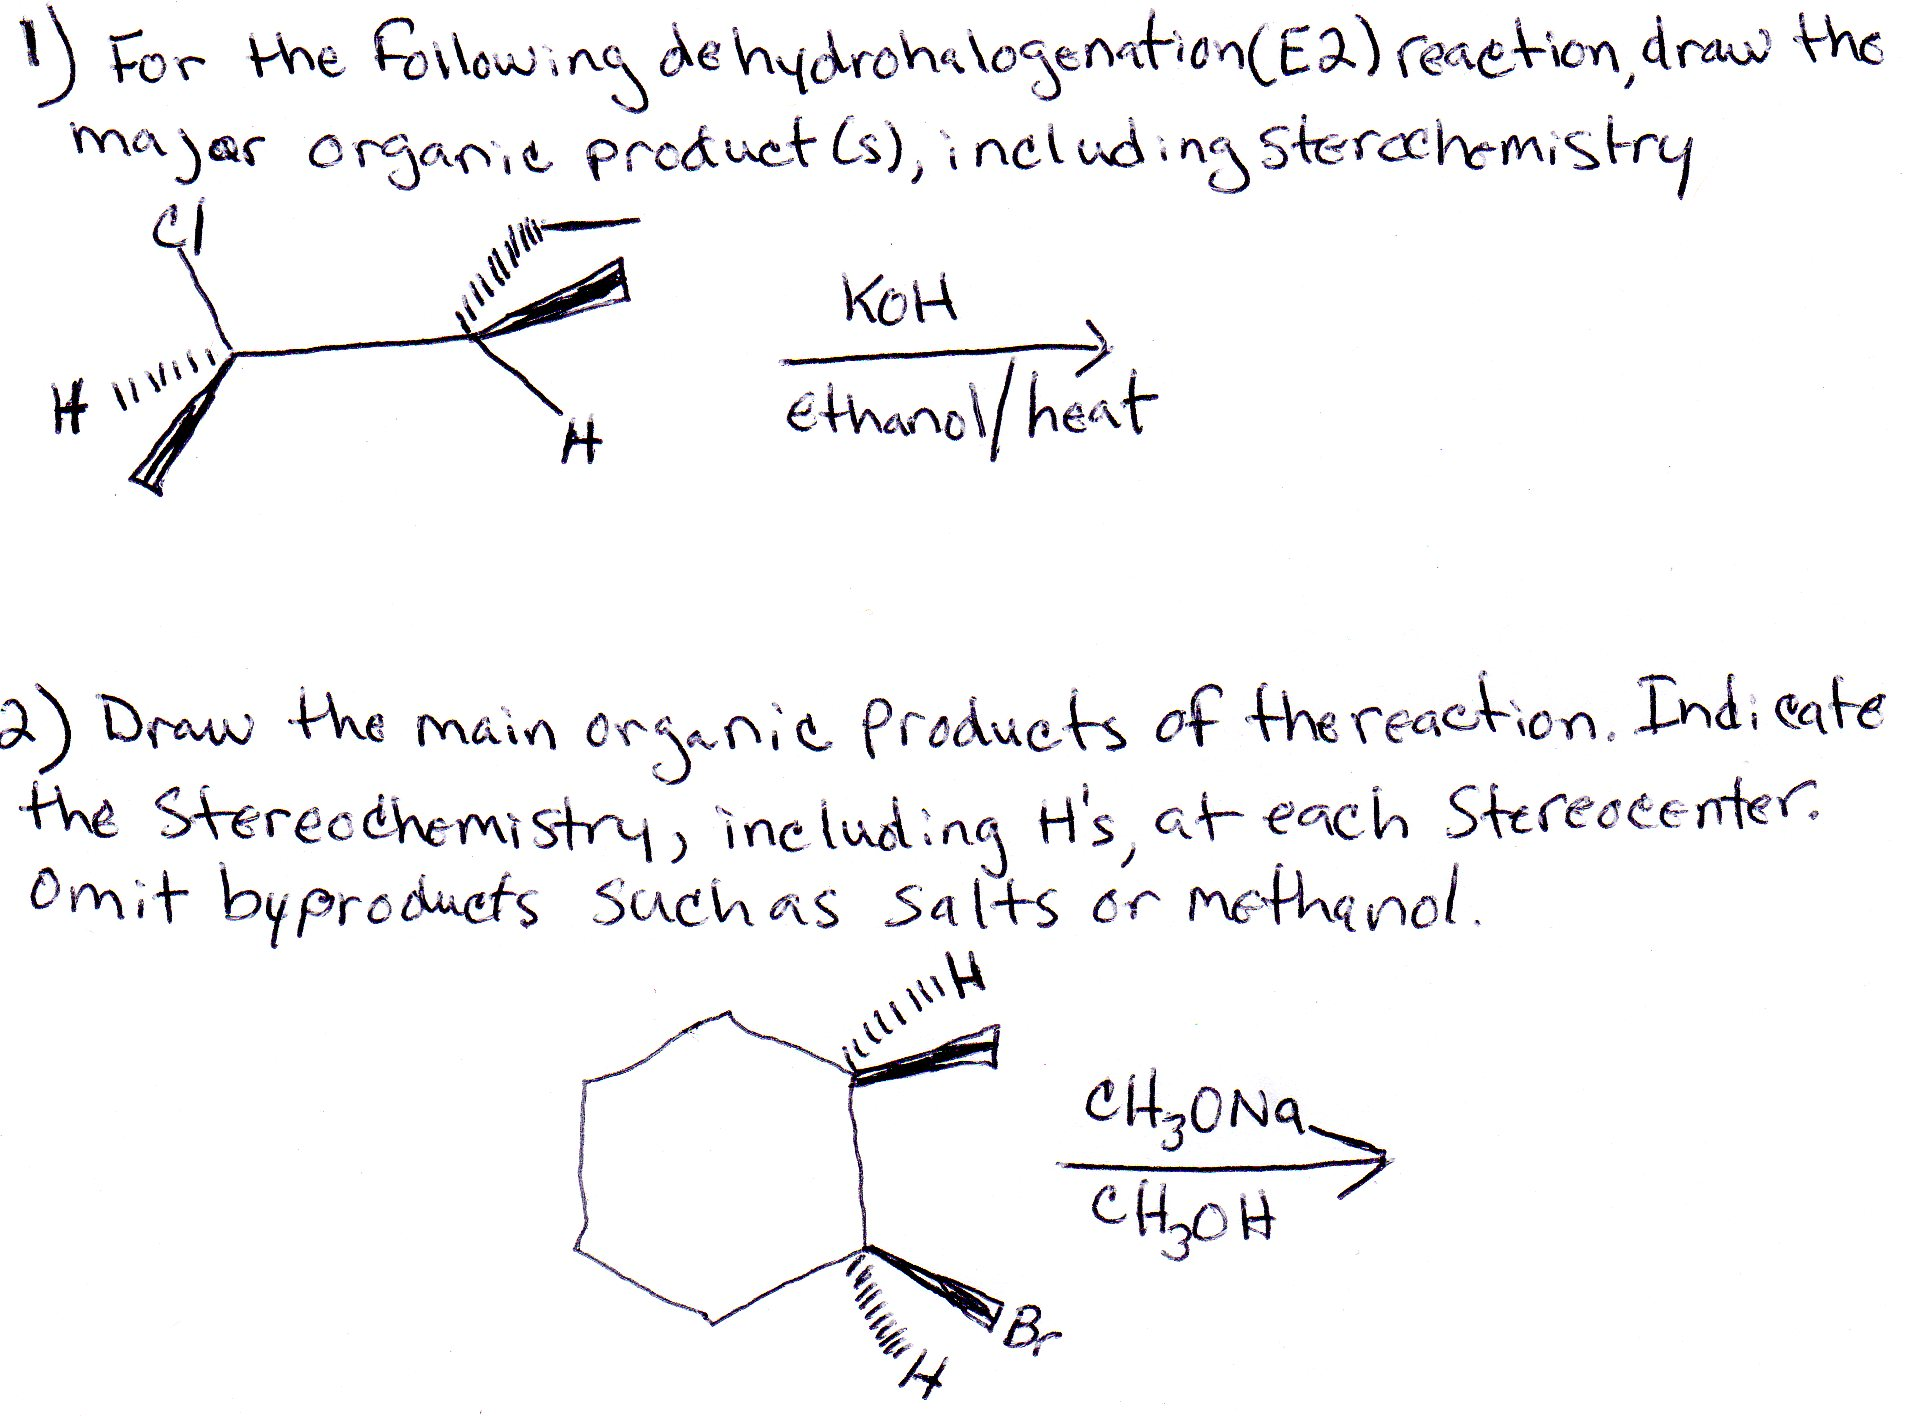 For The Following Dehydrohalogenation E 2 Reaction Draw The Major Organic Product